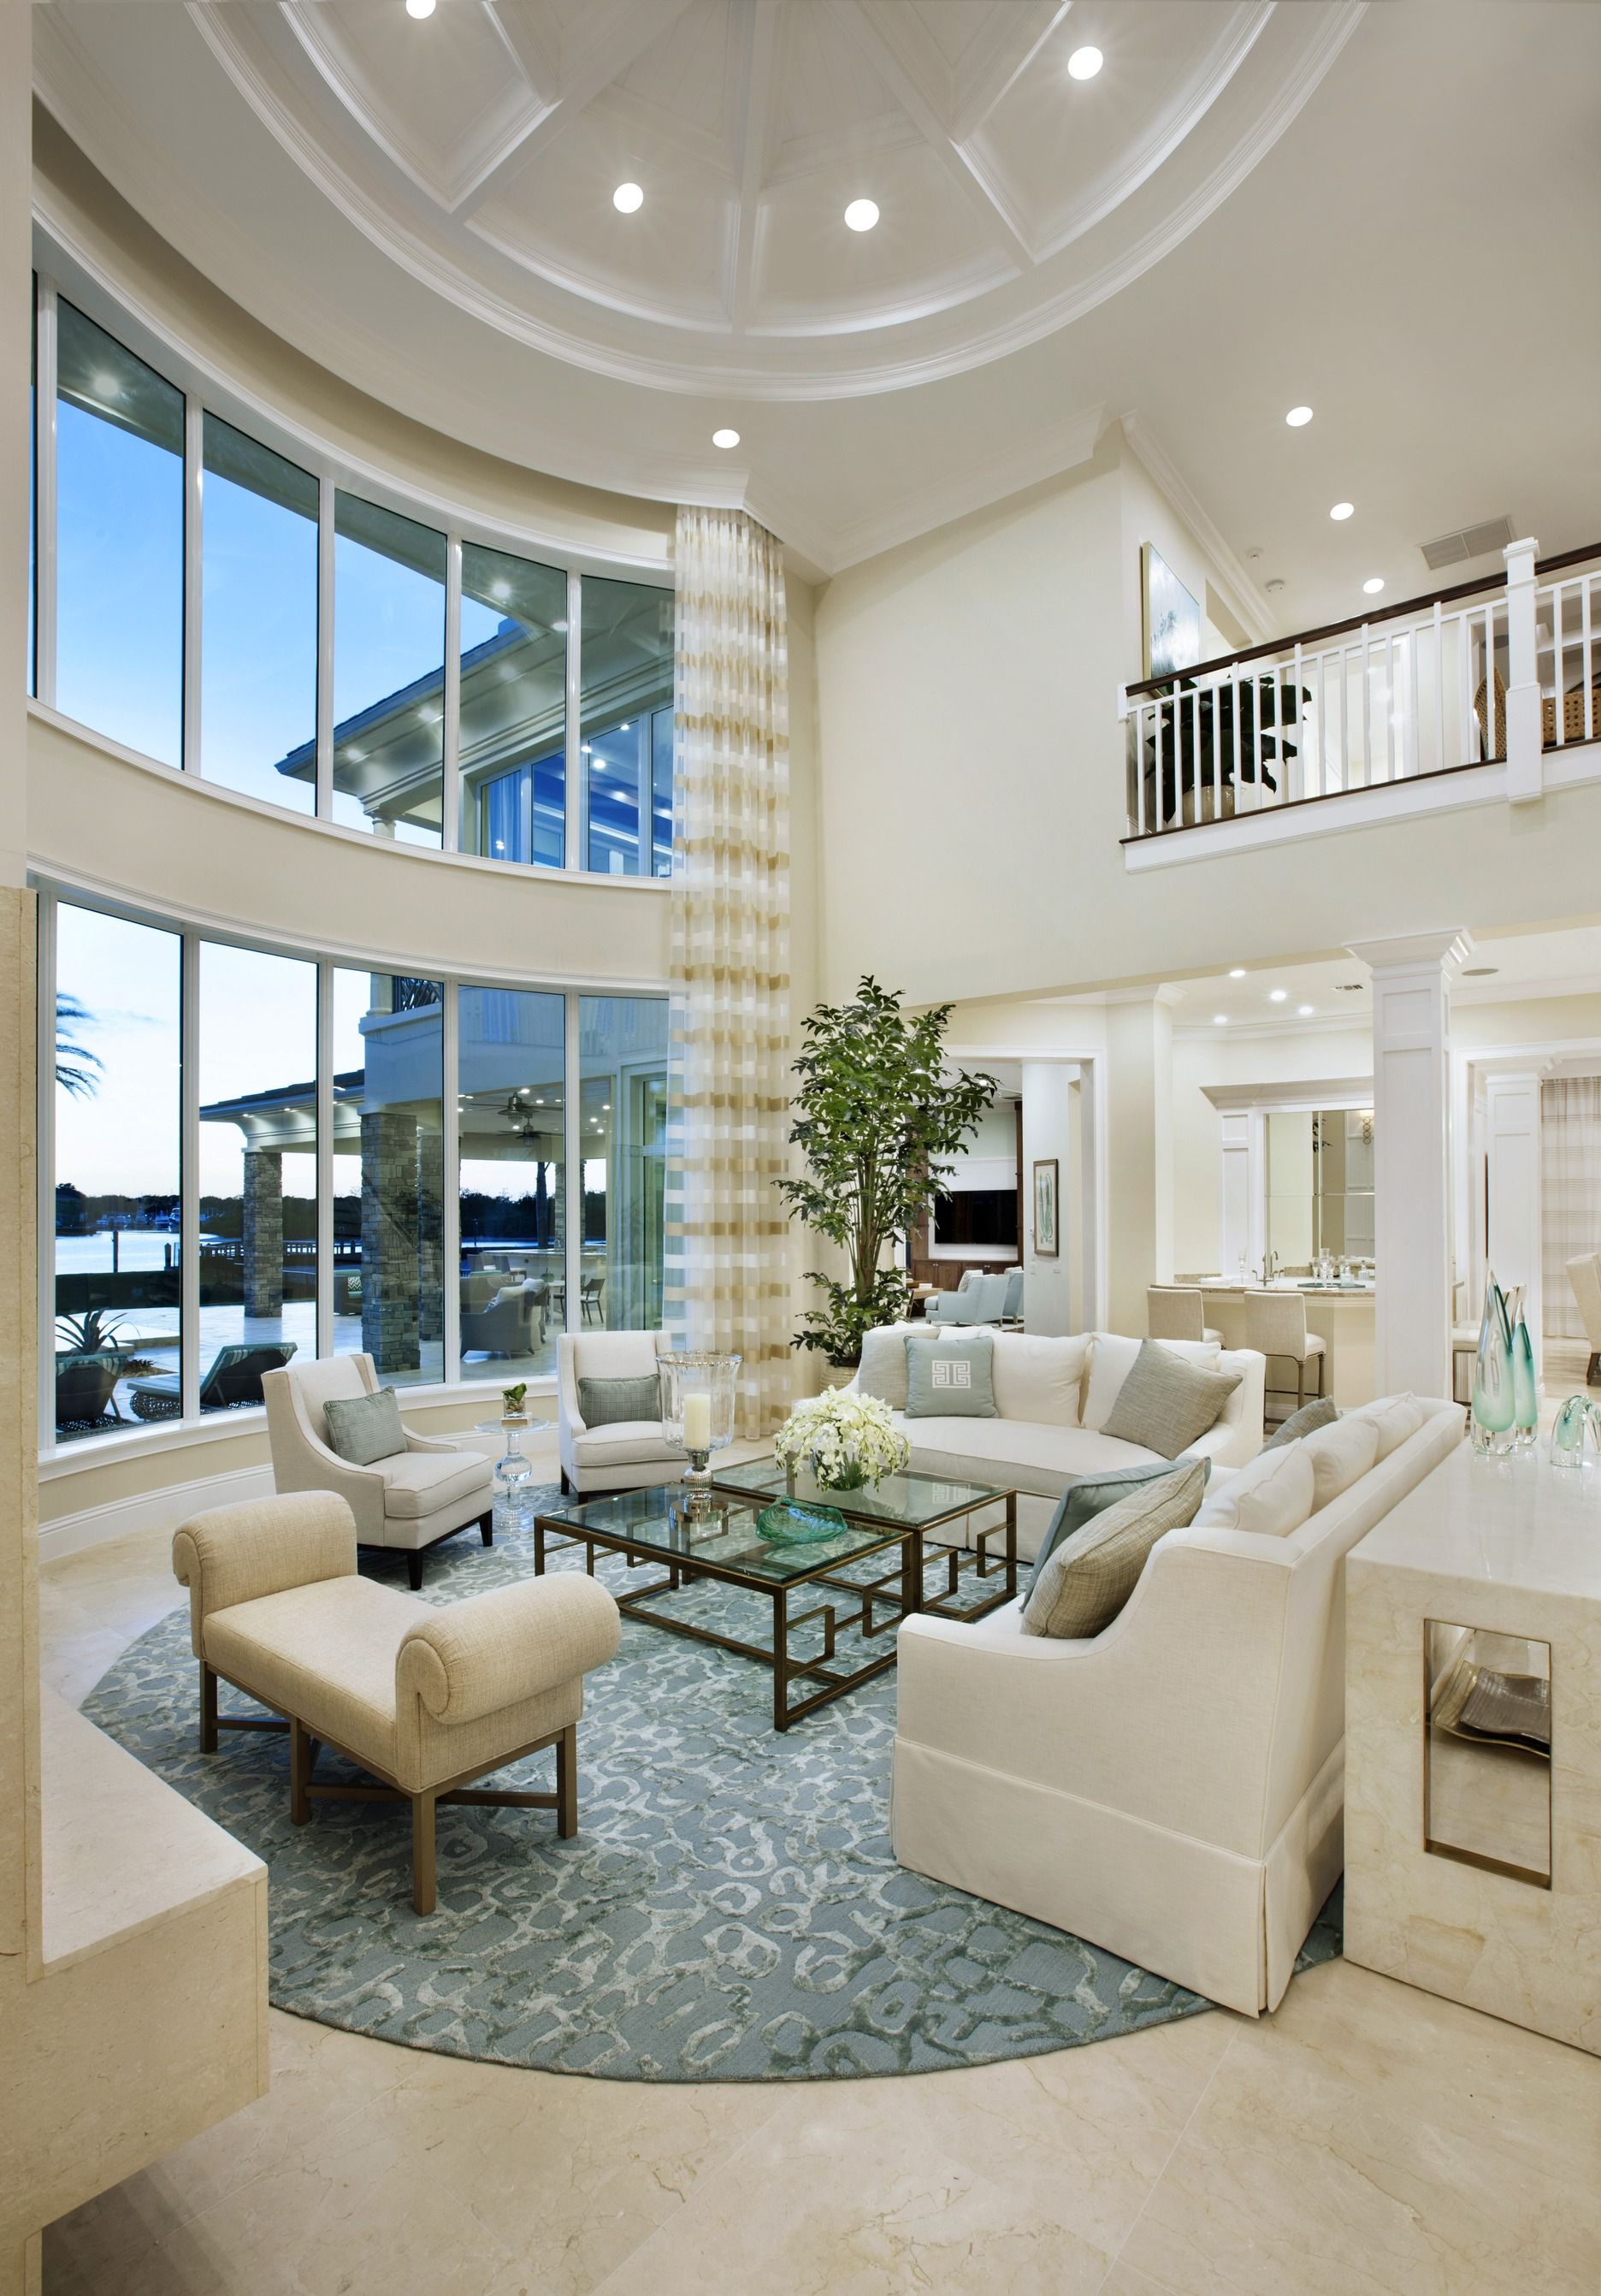 Florida Living Room Design Ideas: Stunning Floor-to-ceiling Windows In This Gorgeous Two